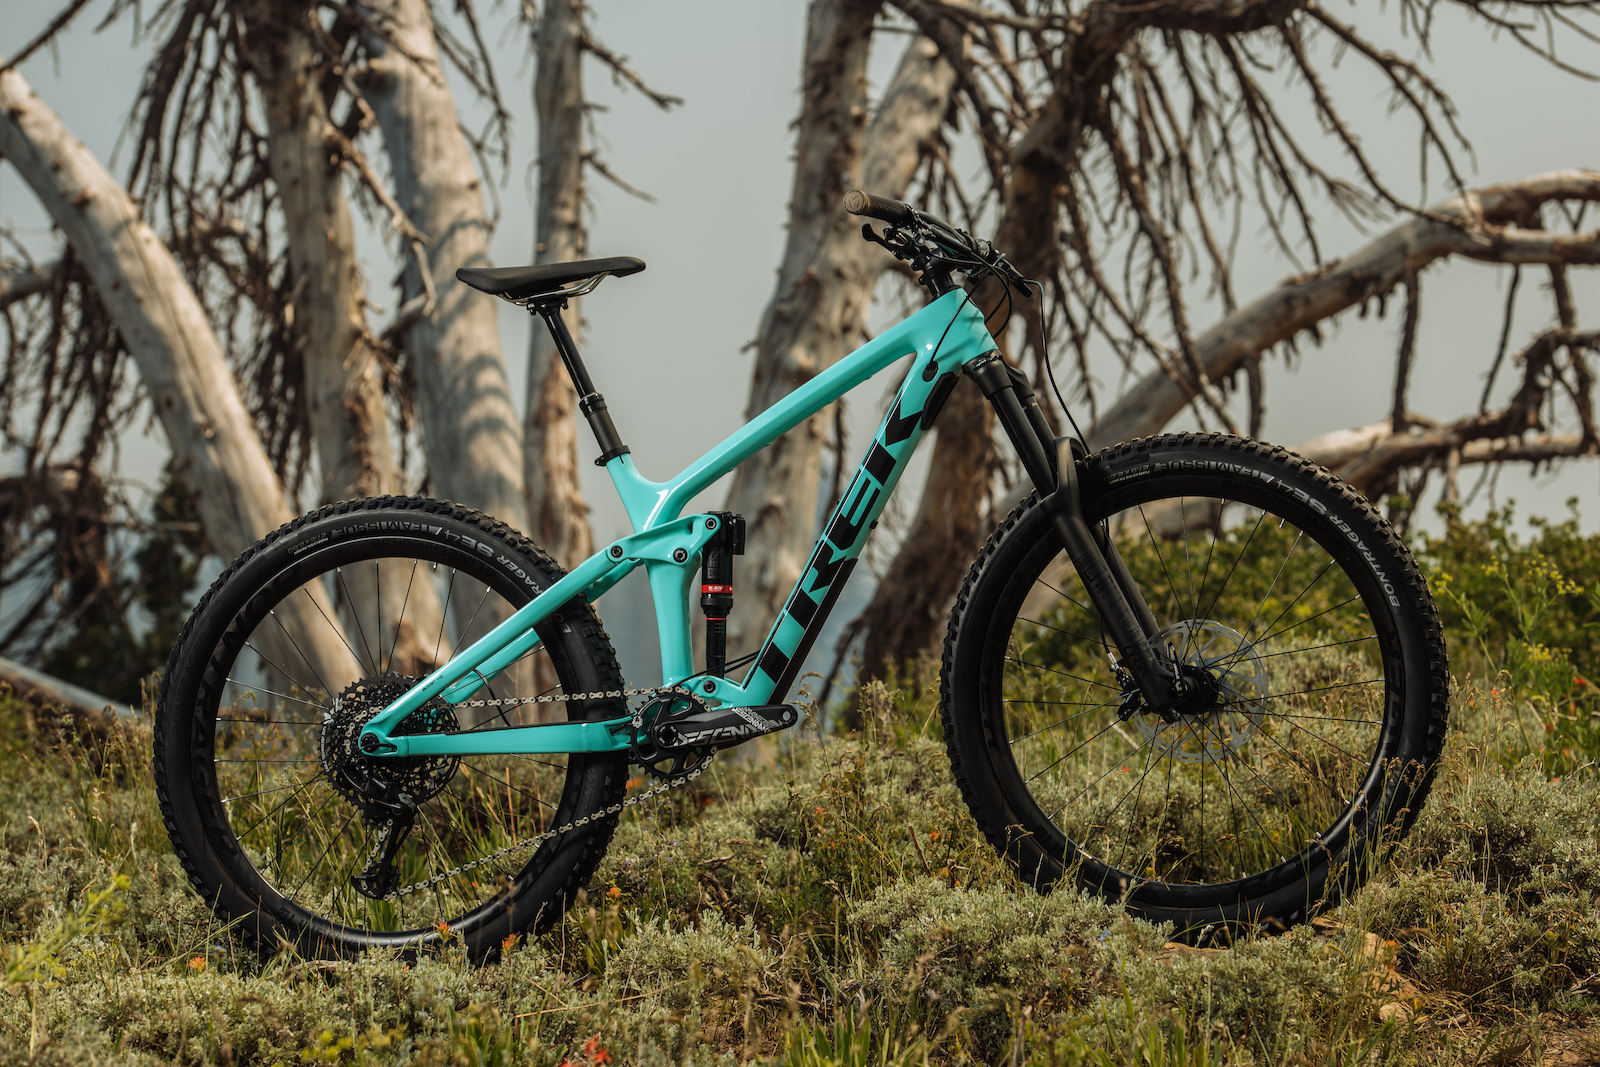 3de14b9a80c First Look: Trek's New 2019 Remedy - Pinkbike